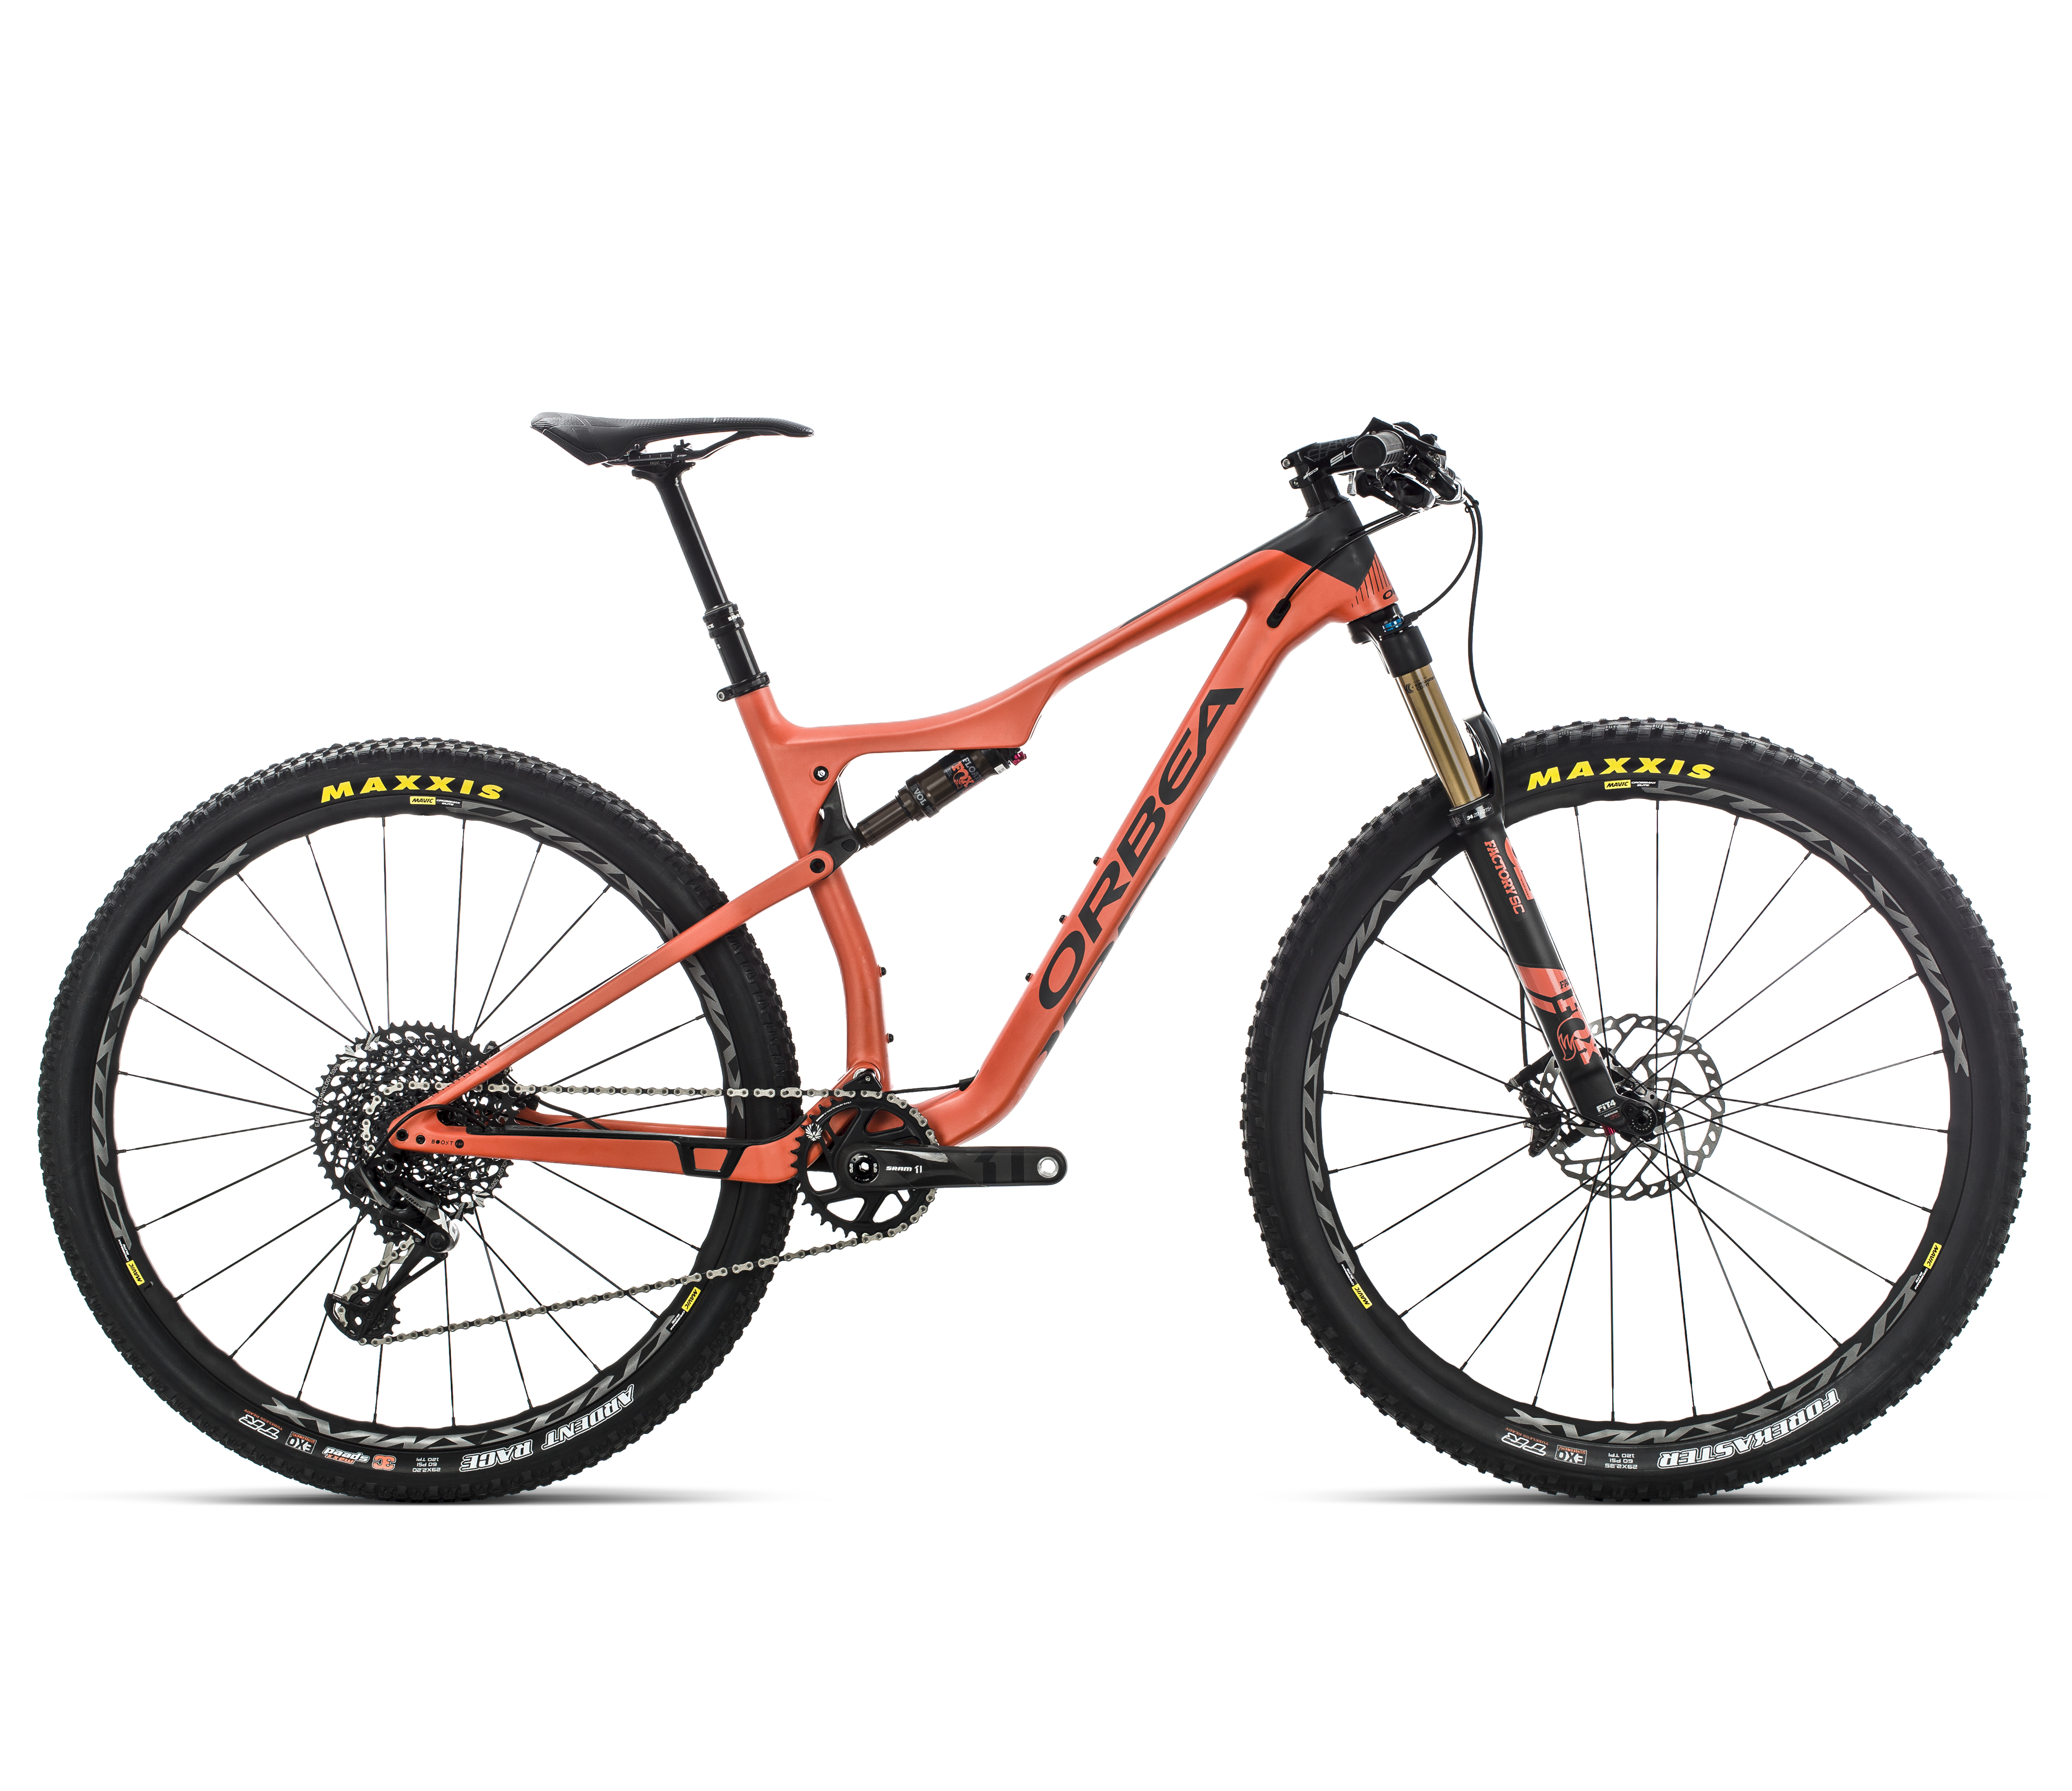 The Oiz M10 TR retails for $5400, arriving with a 120mm shock and dialed for the trails both up and down.